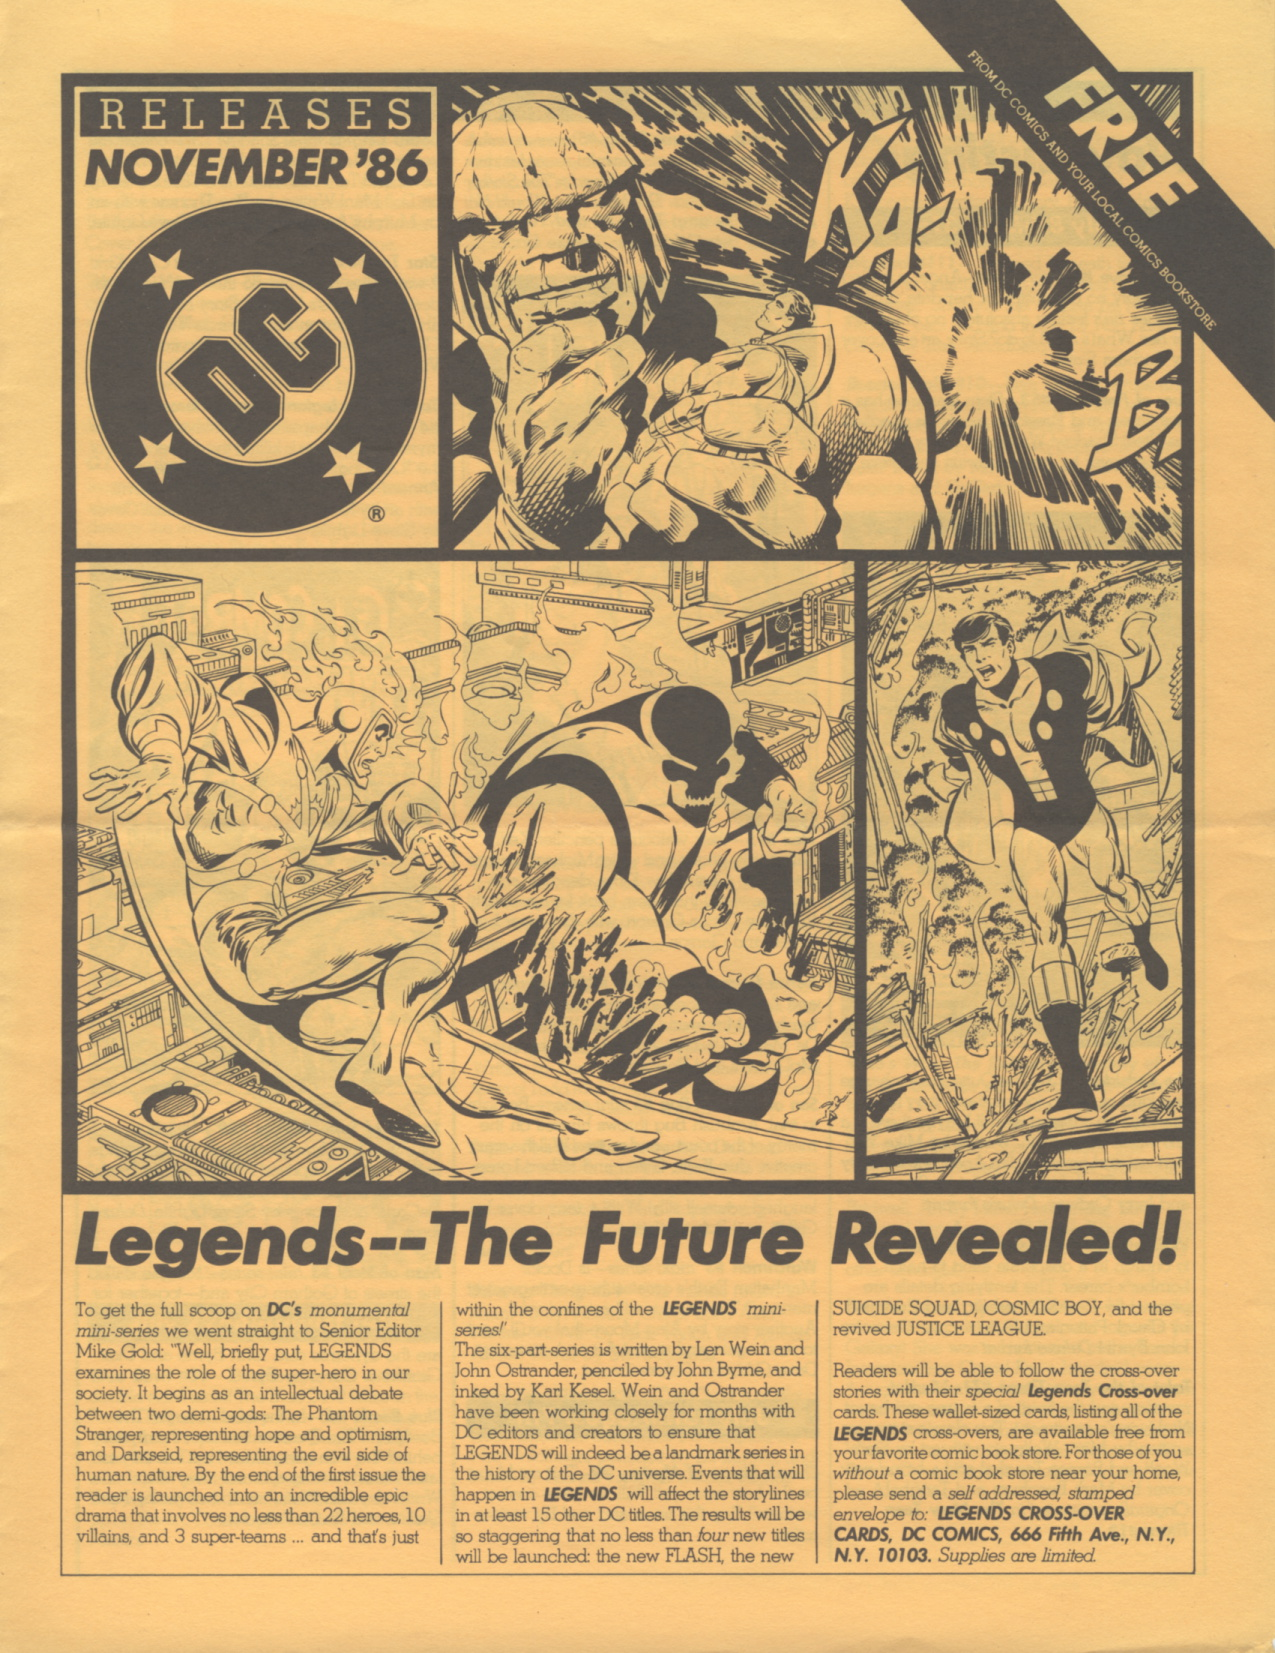 Time Capsule: DC Releases November '86